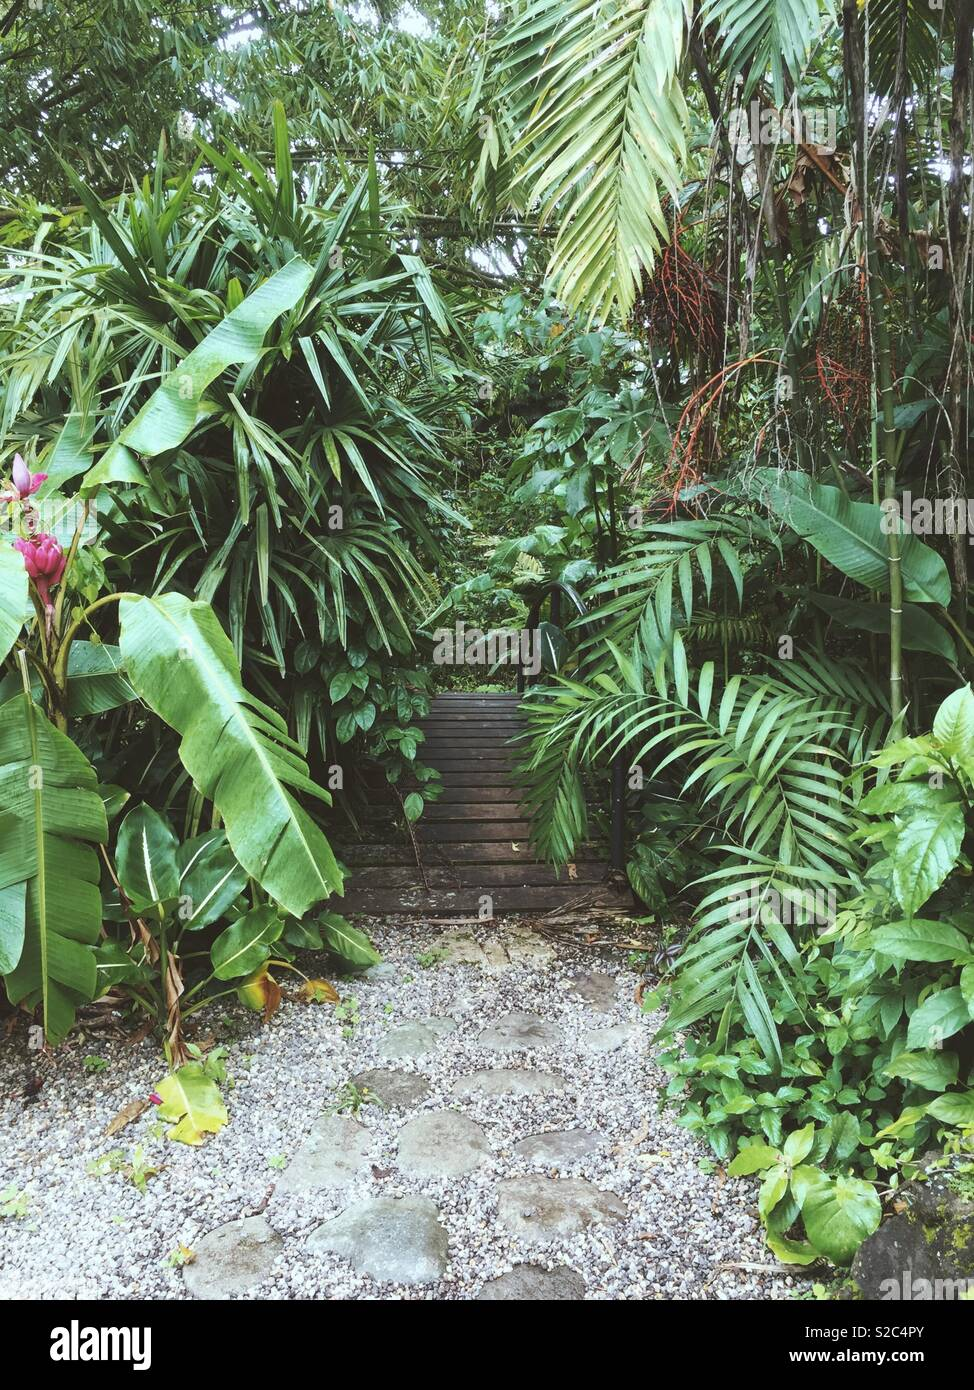 Hidden places - Stock Image